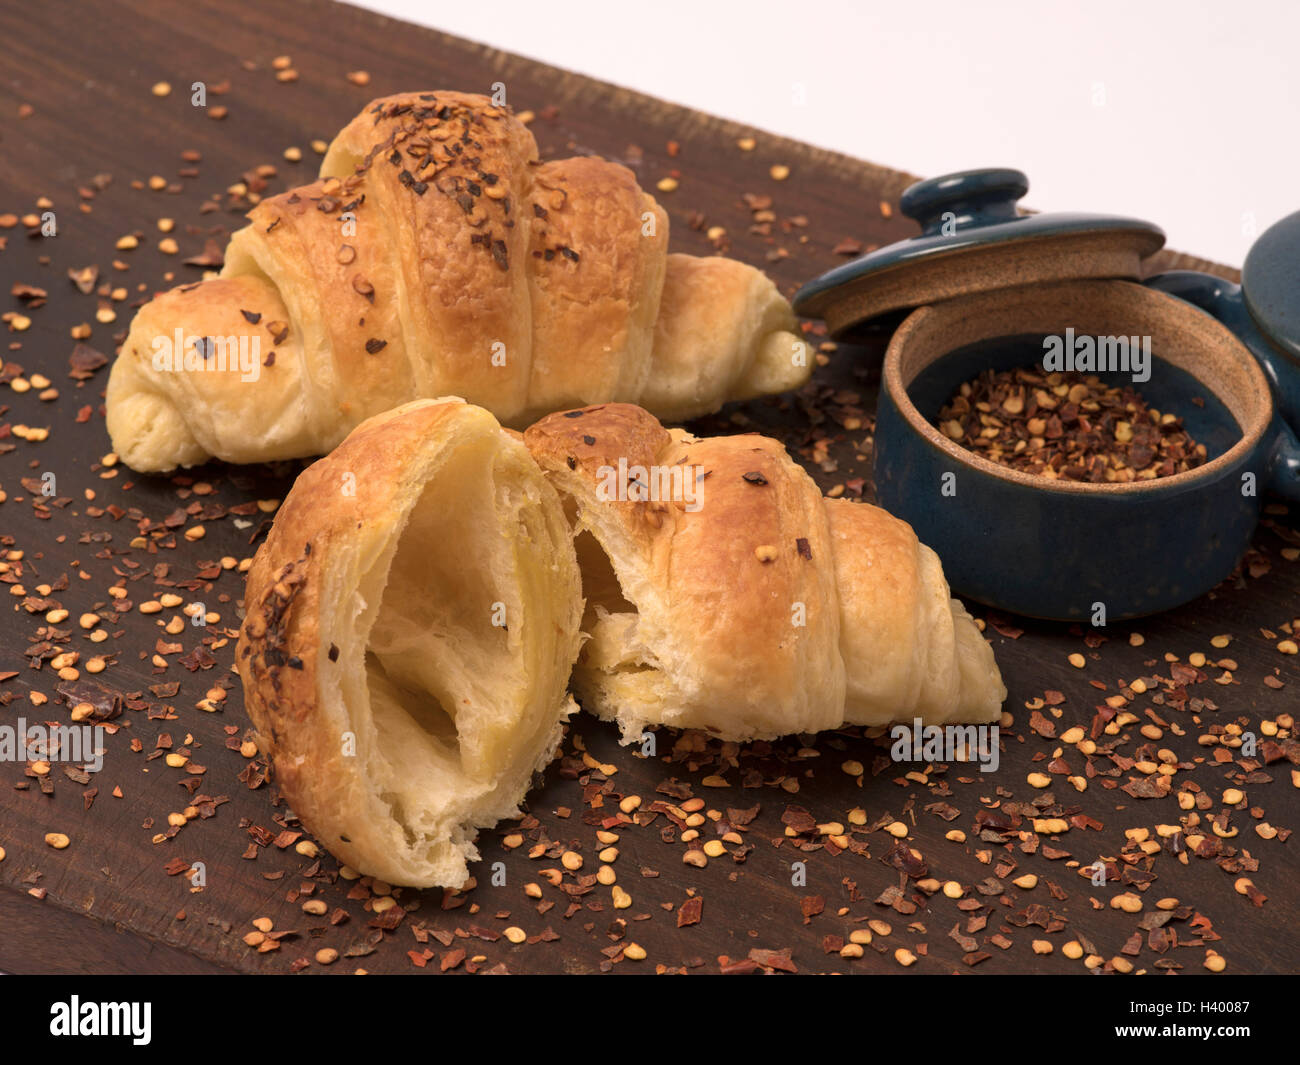 CHEESE CHILLI CROISSAND - Stock Image